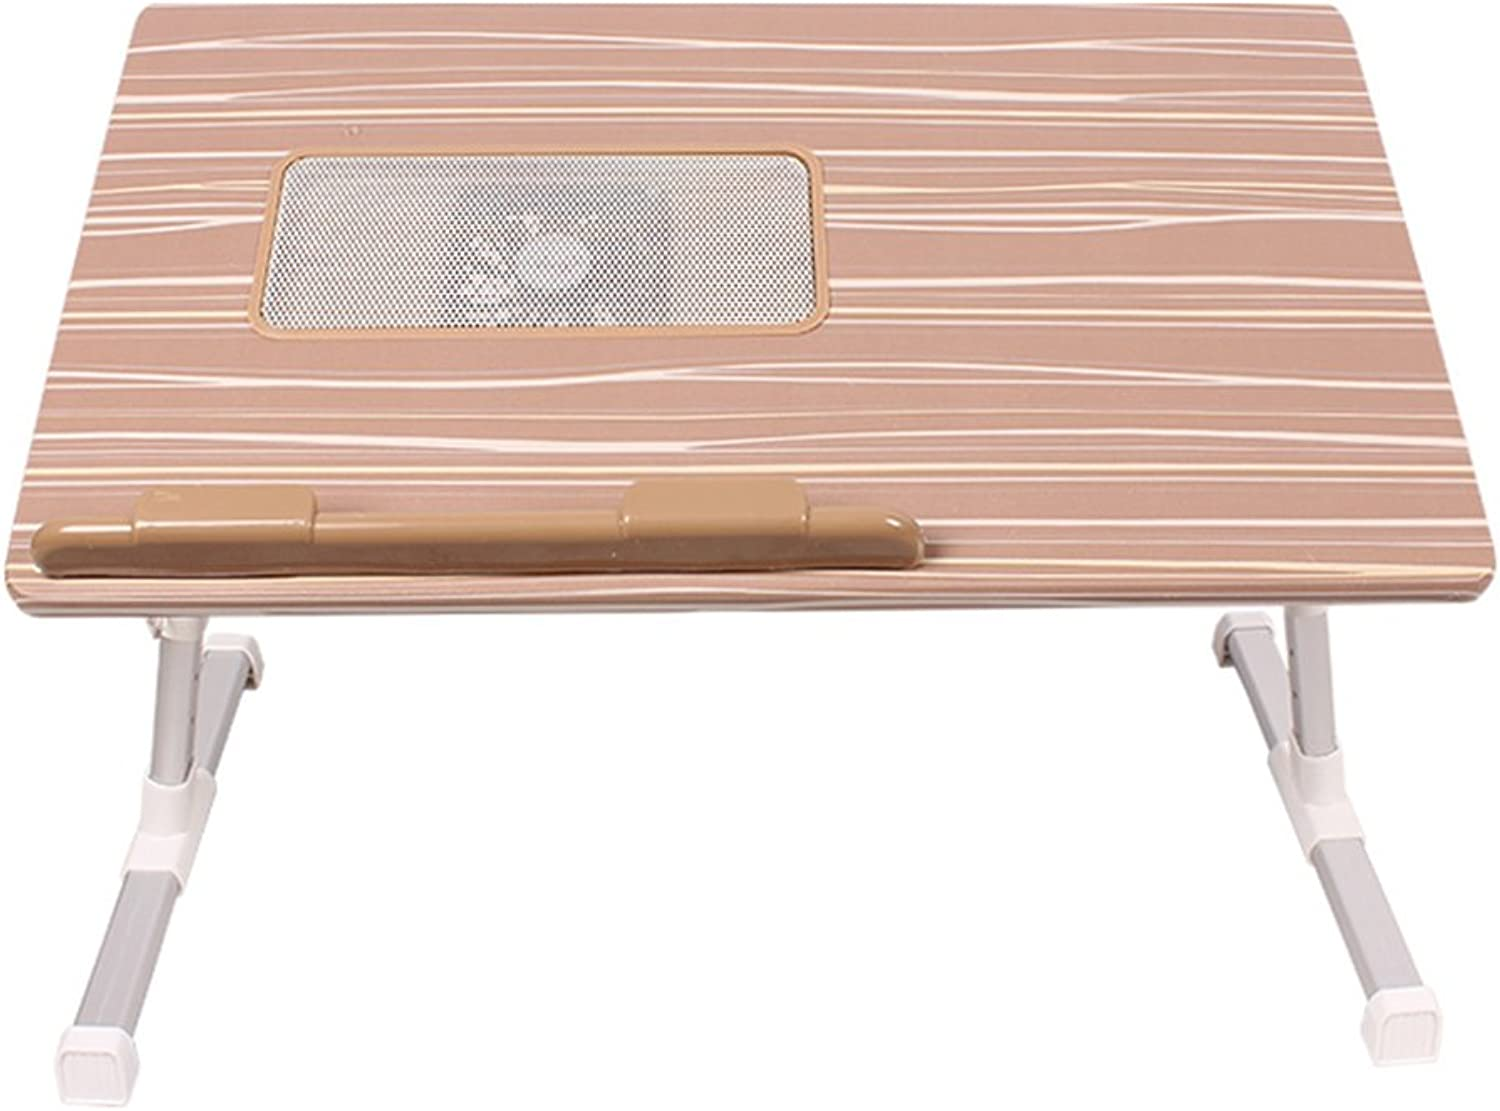 XUERUI Folding Tables Bed Use Folding Table Computer Desk Student Dormitory Use Writing Desk Brown White Desk 52cm30cm24-33cm (color   Brown)